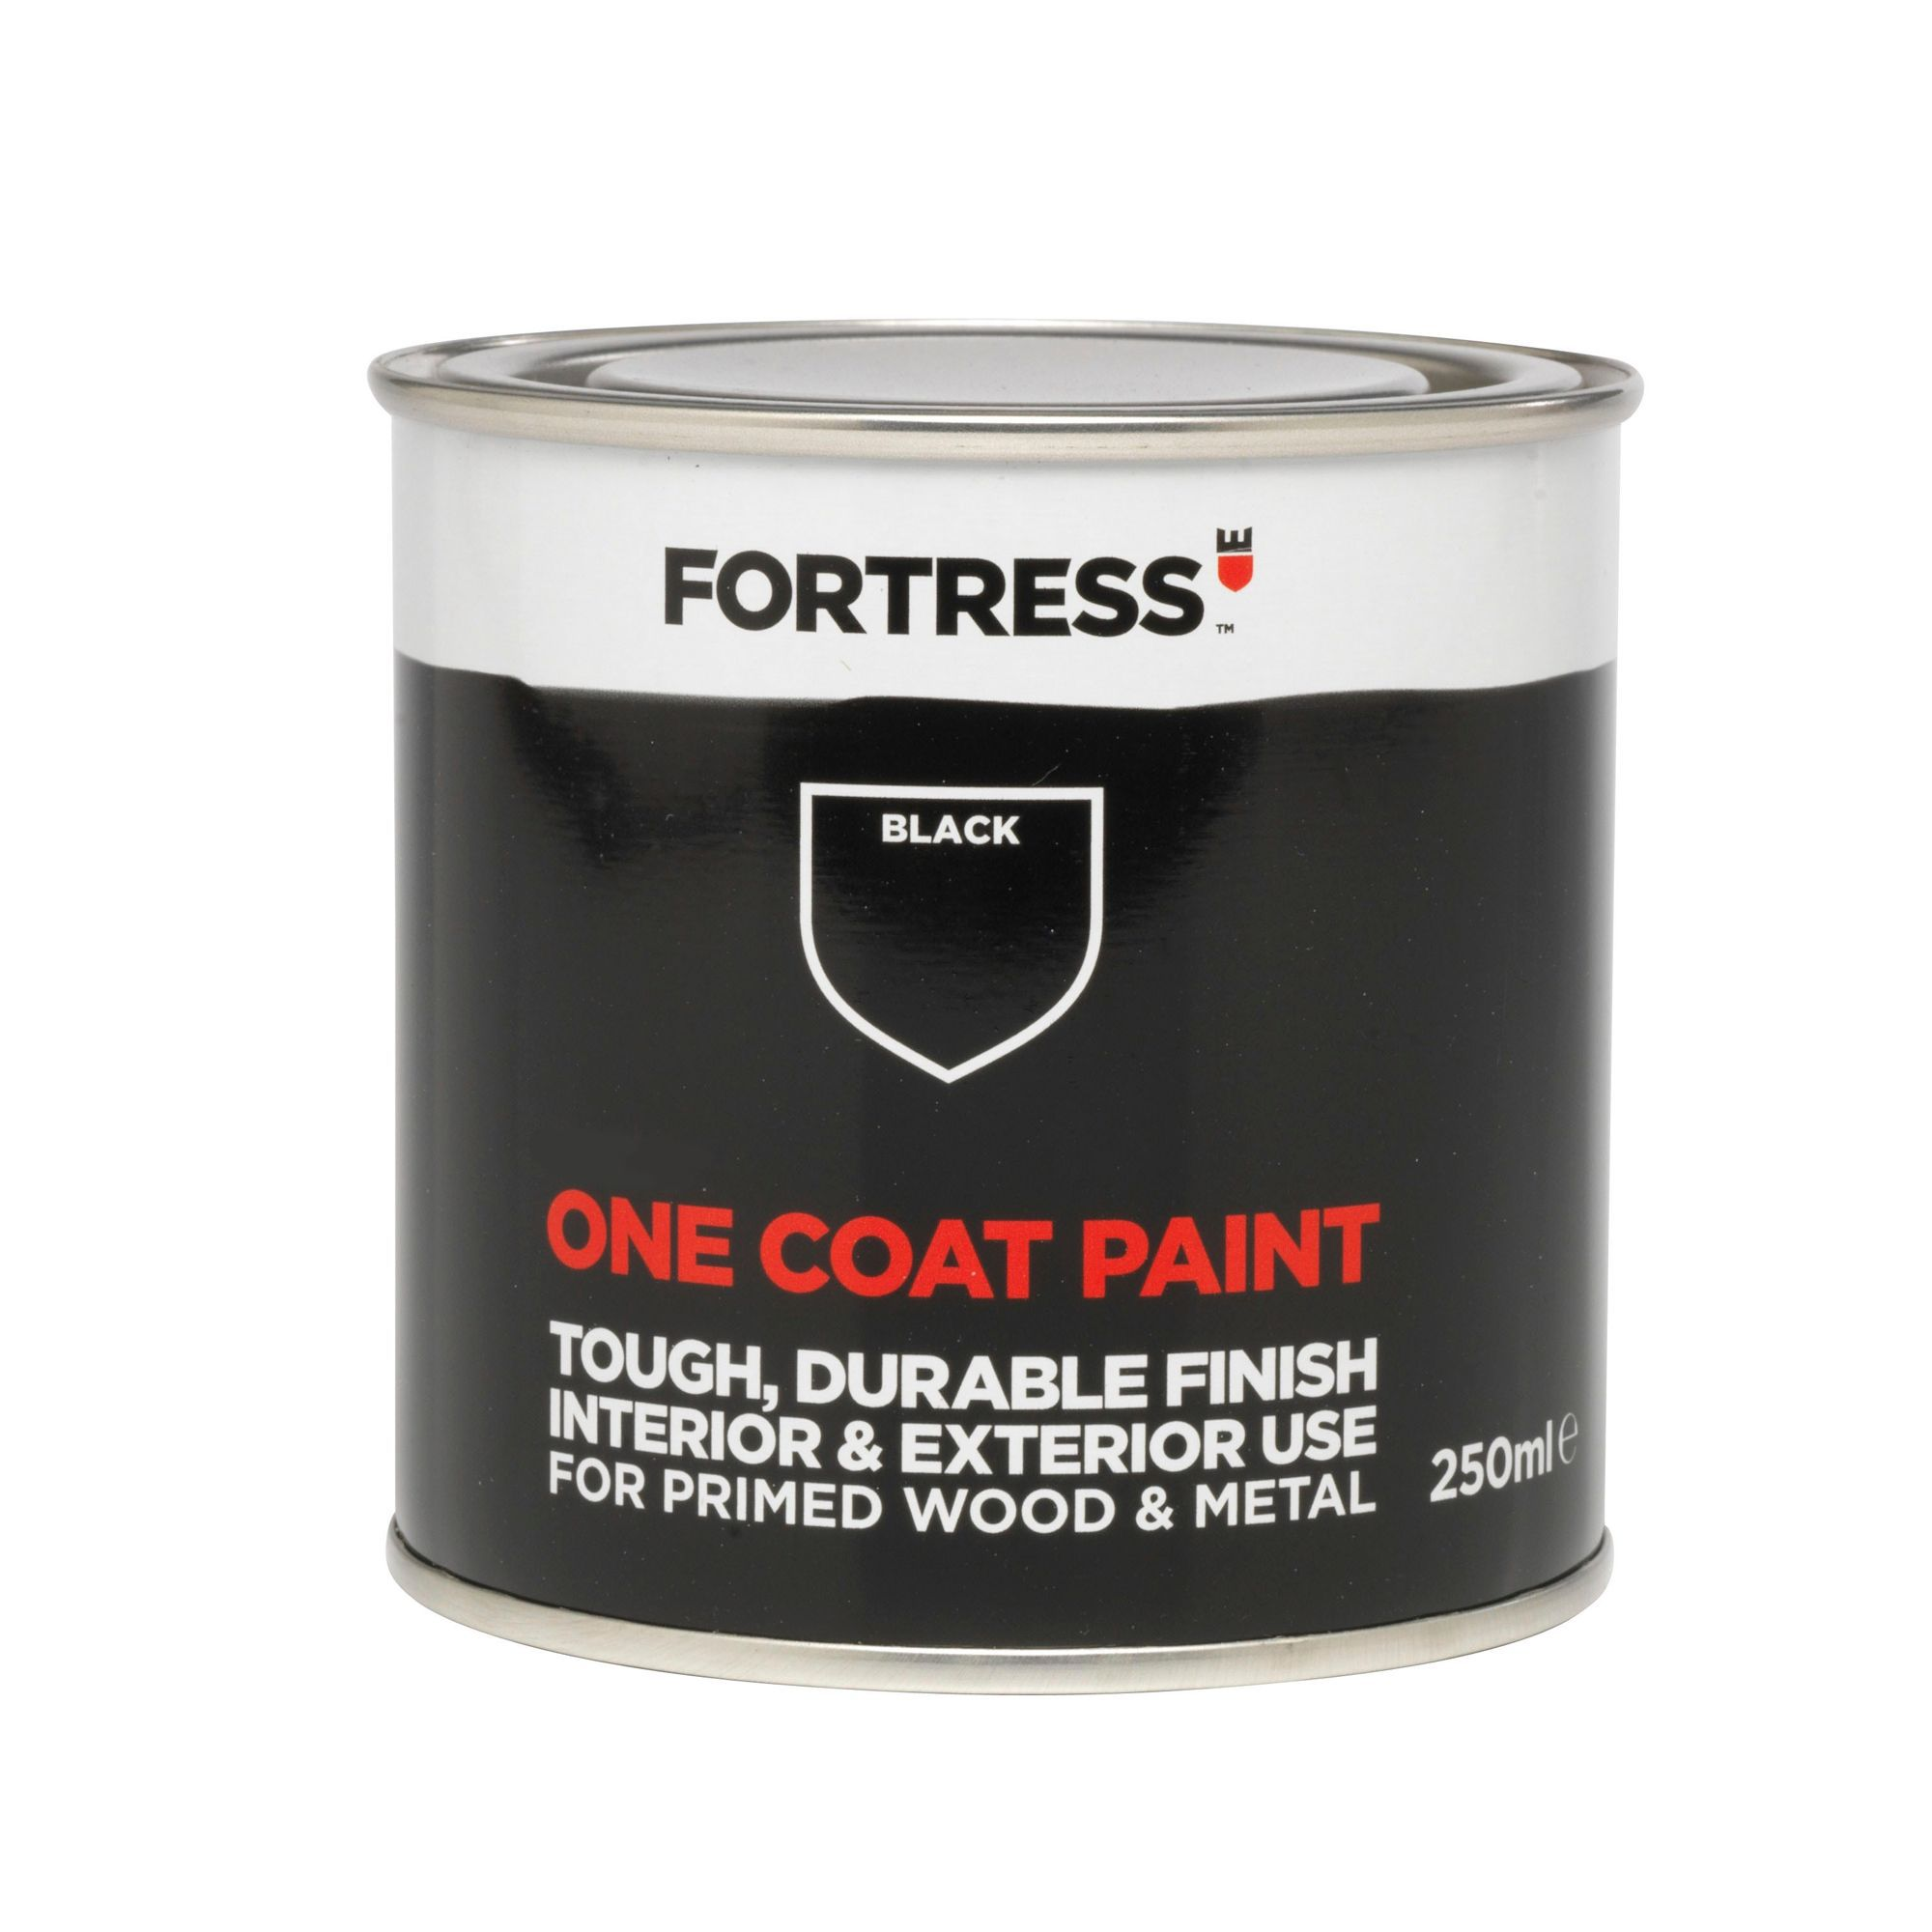 Dulux malt chocolate emulsion paint 50ml tester pot departments diy at b q - Exterior wood paint matt pict ...